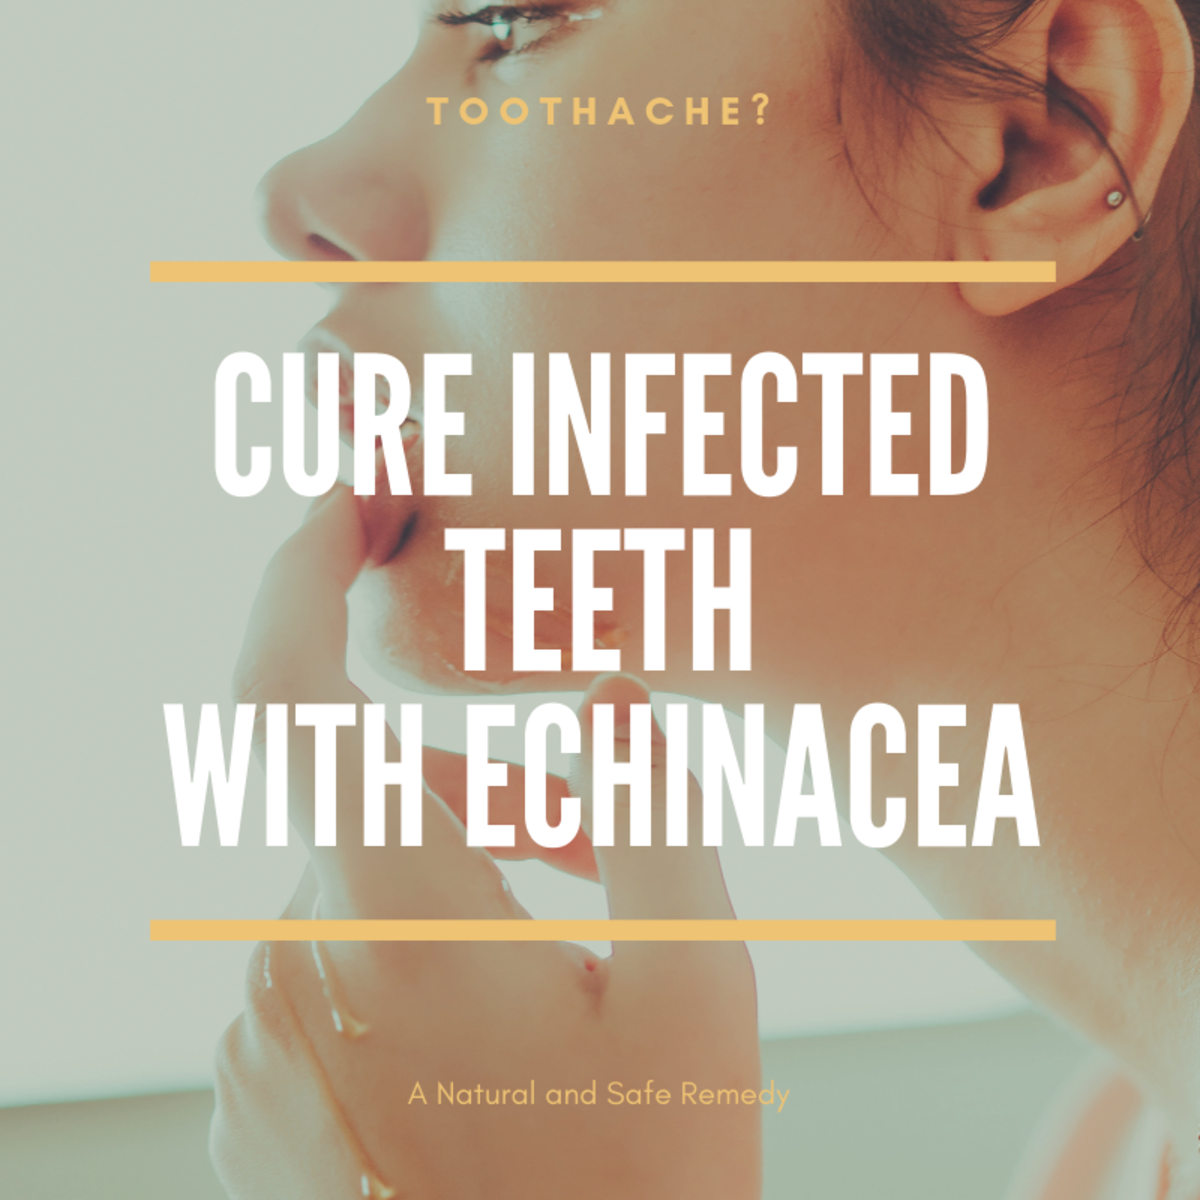 How to Resolve a Toothache With Echinacea